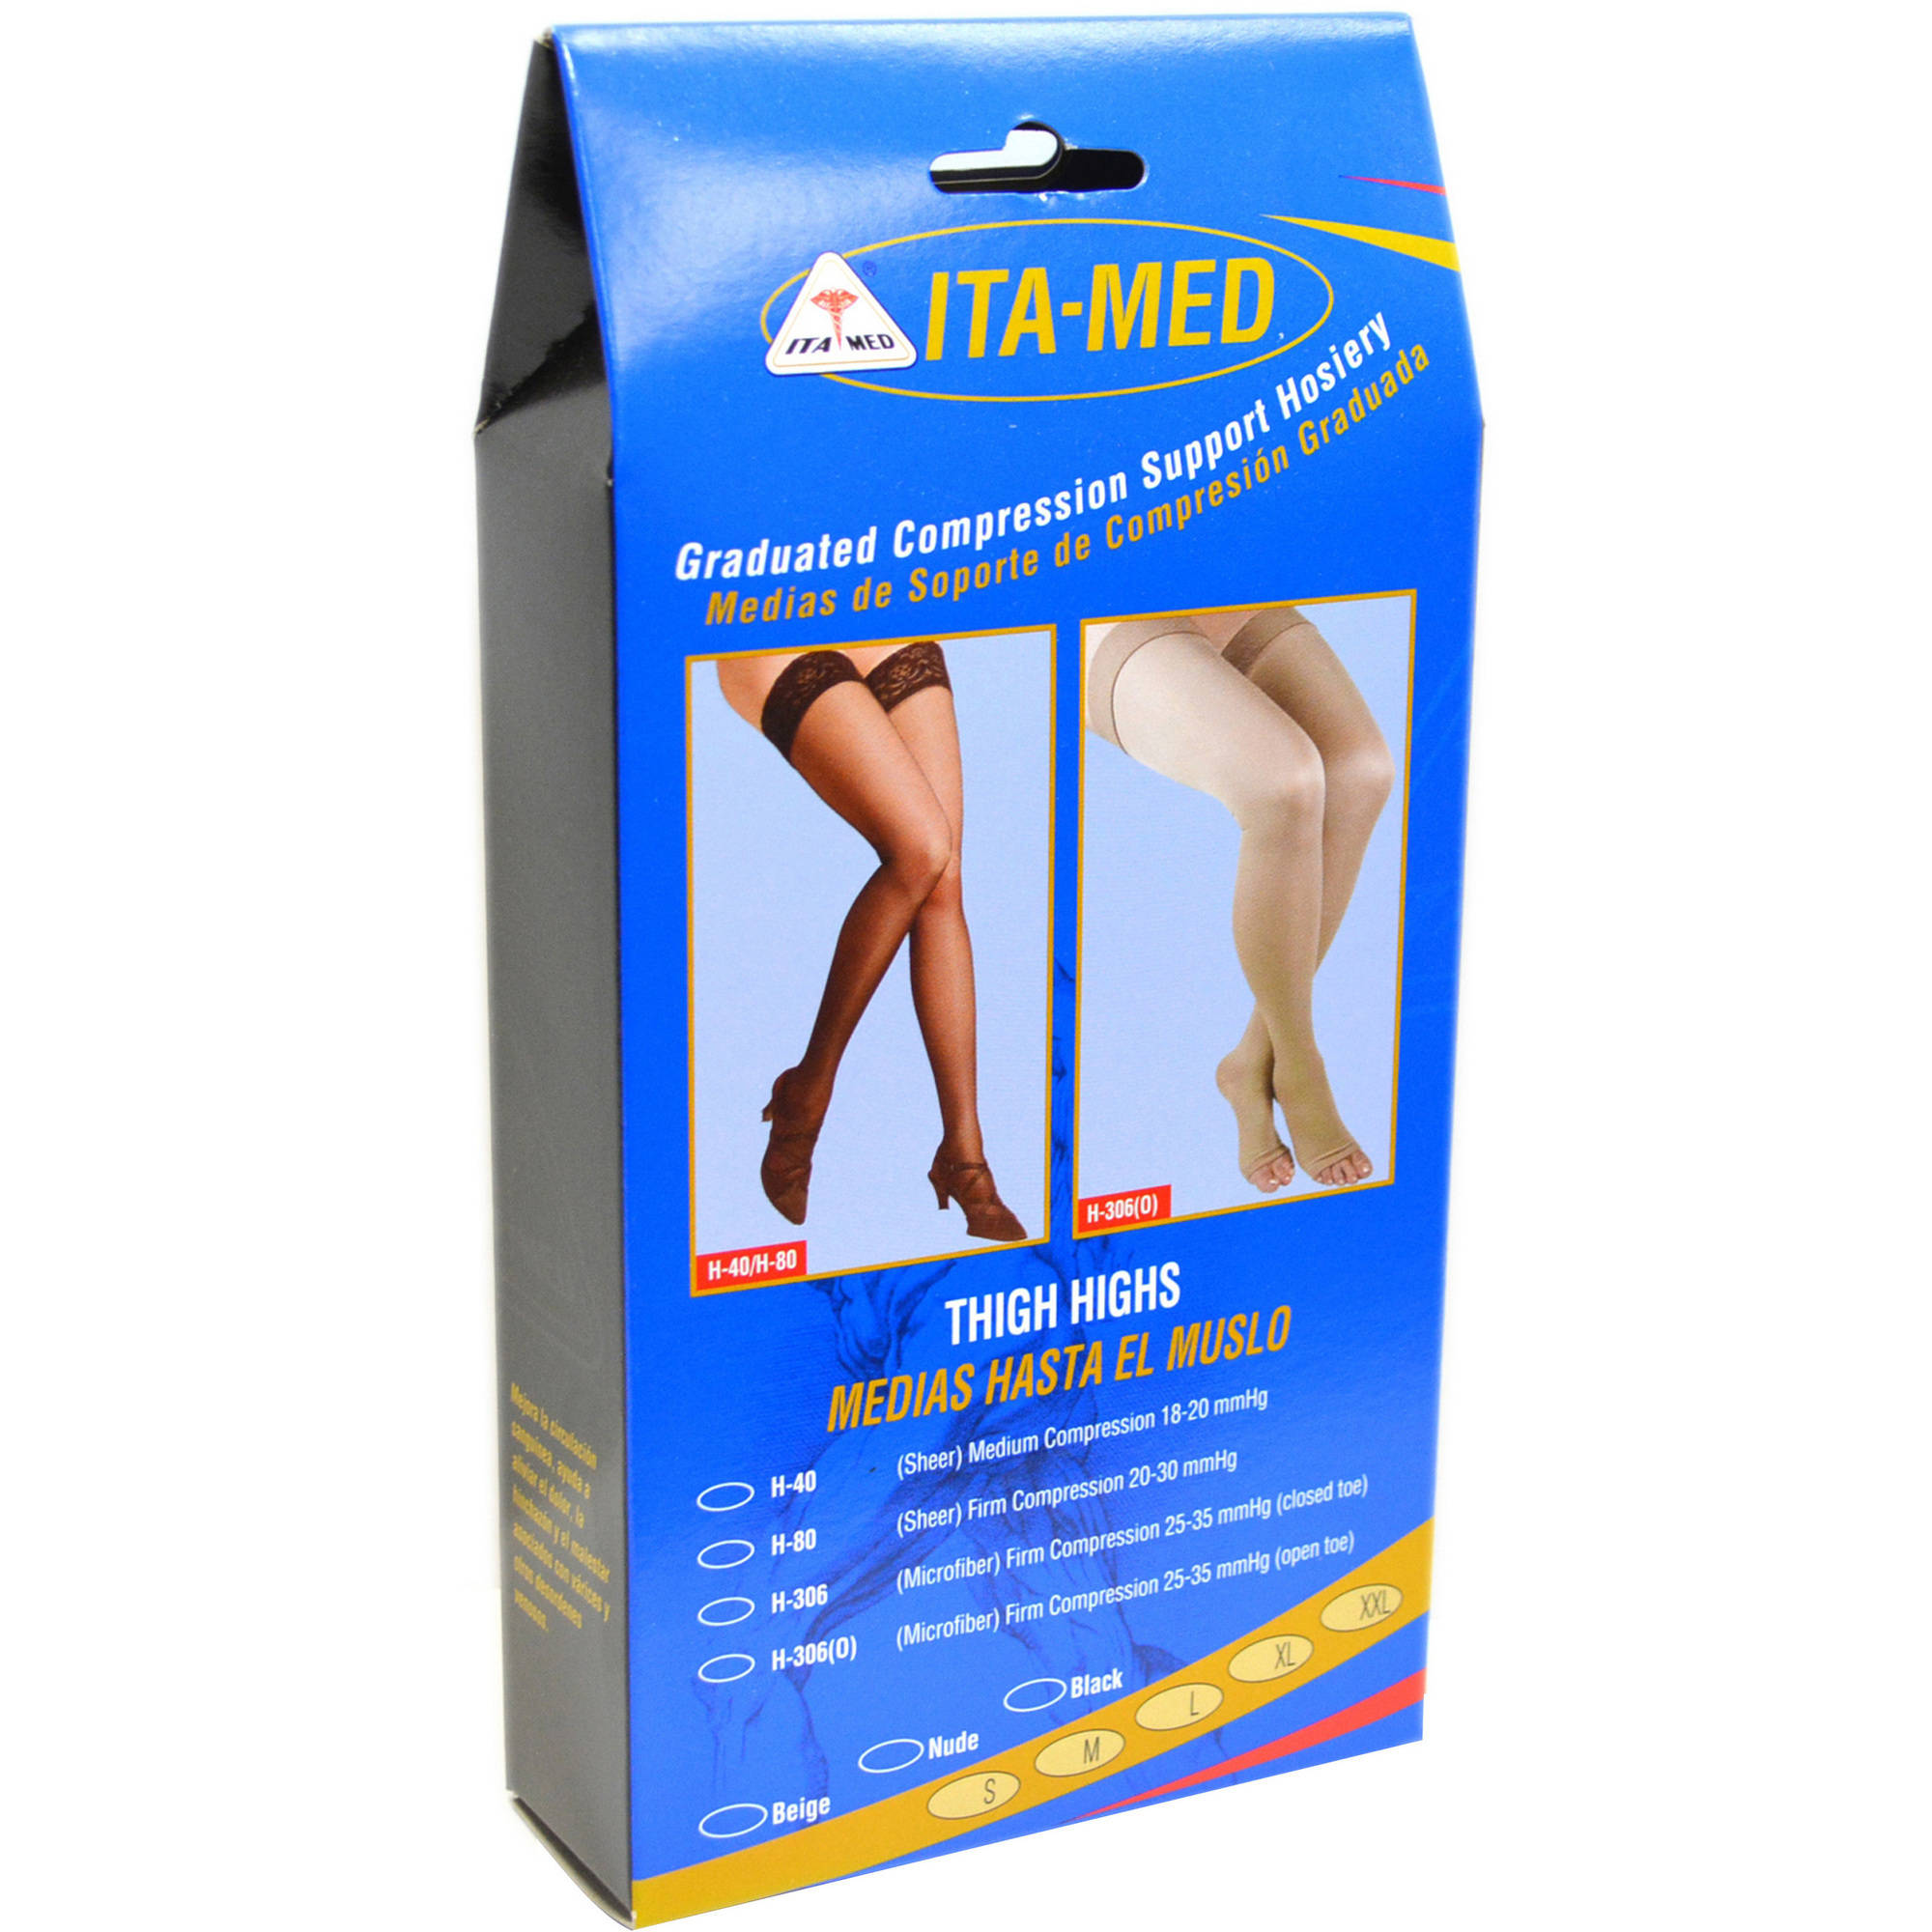 ITA-MED Sheer Thigh Highs - Compression (20-22 mmHg): H-40